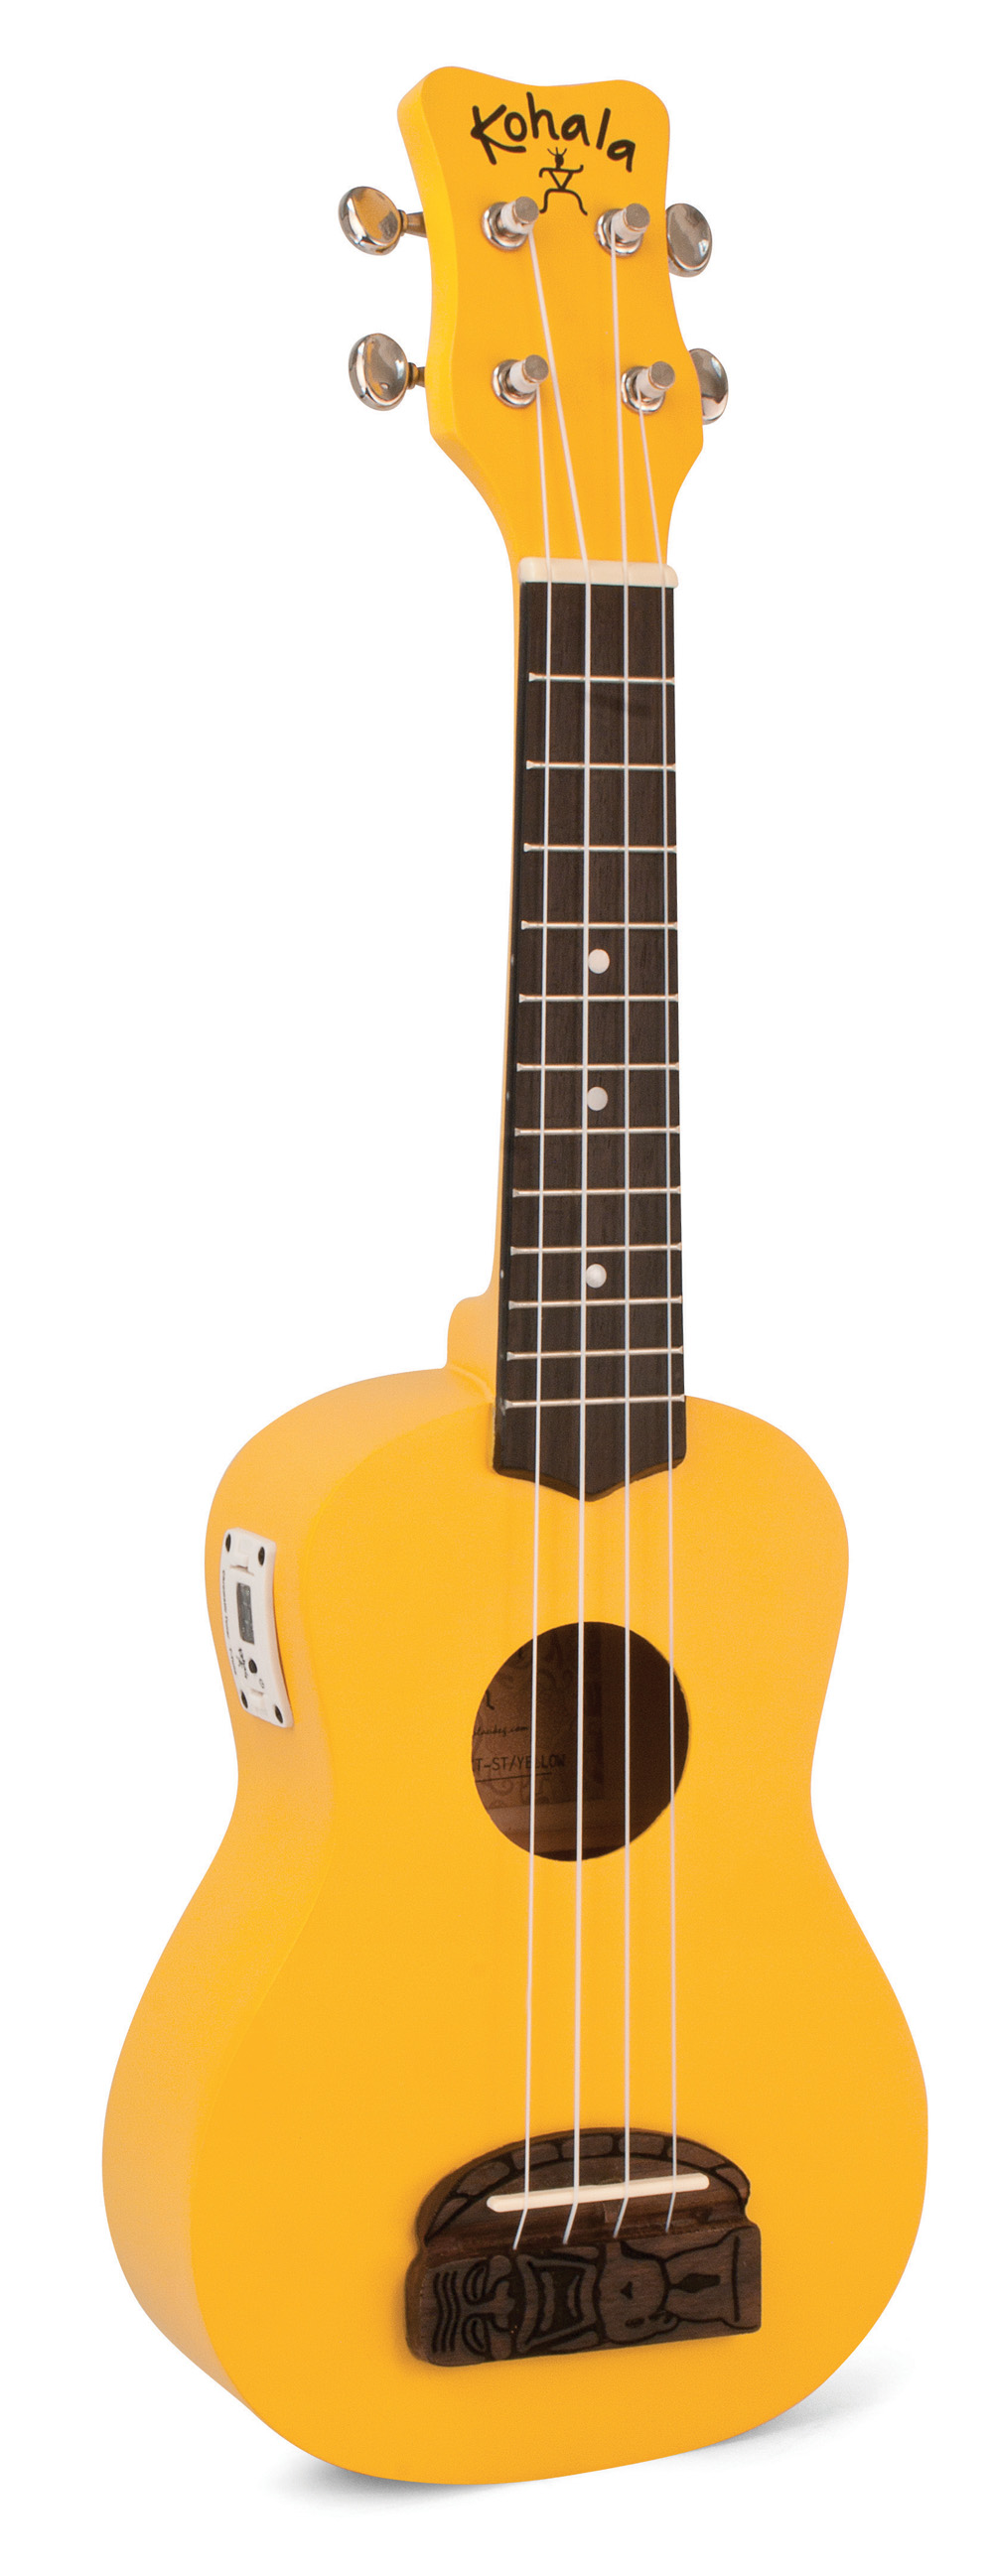 Kohala KT-STYE Tiki Uke Yellow Soprano Ukulele with built in tuner